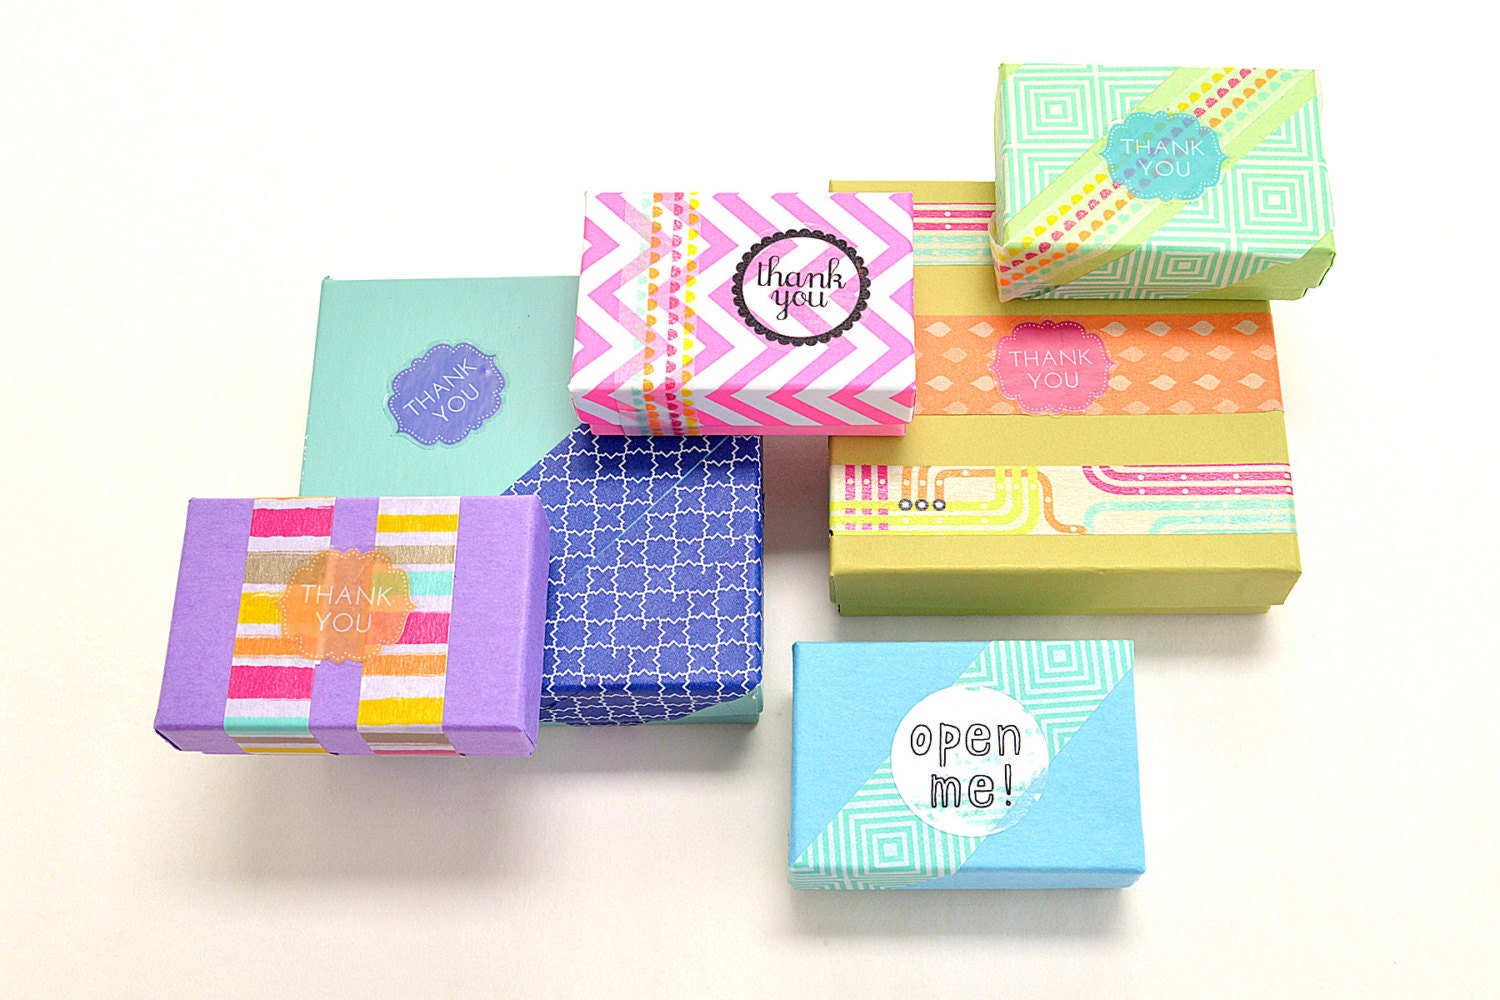 Extra Gift-Wrapped Boxes - Additional Jewelry Gift Boxes